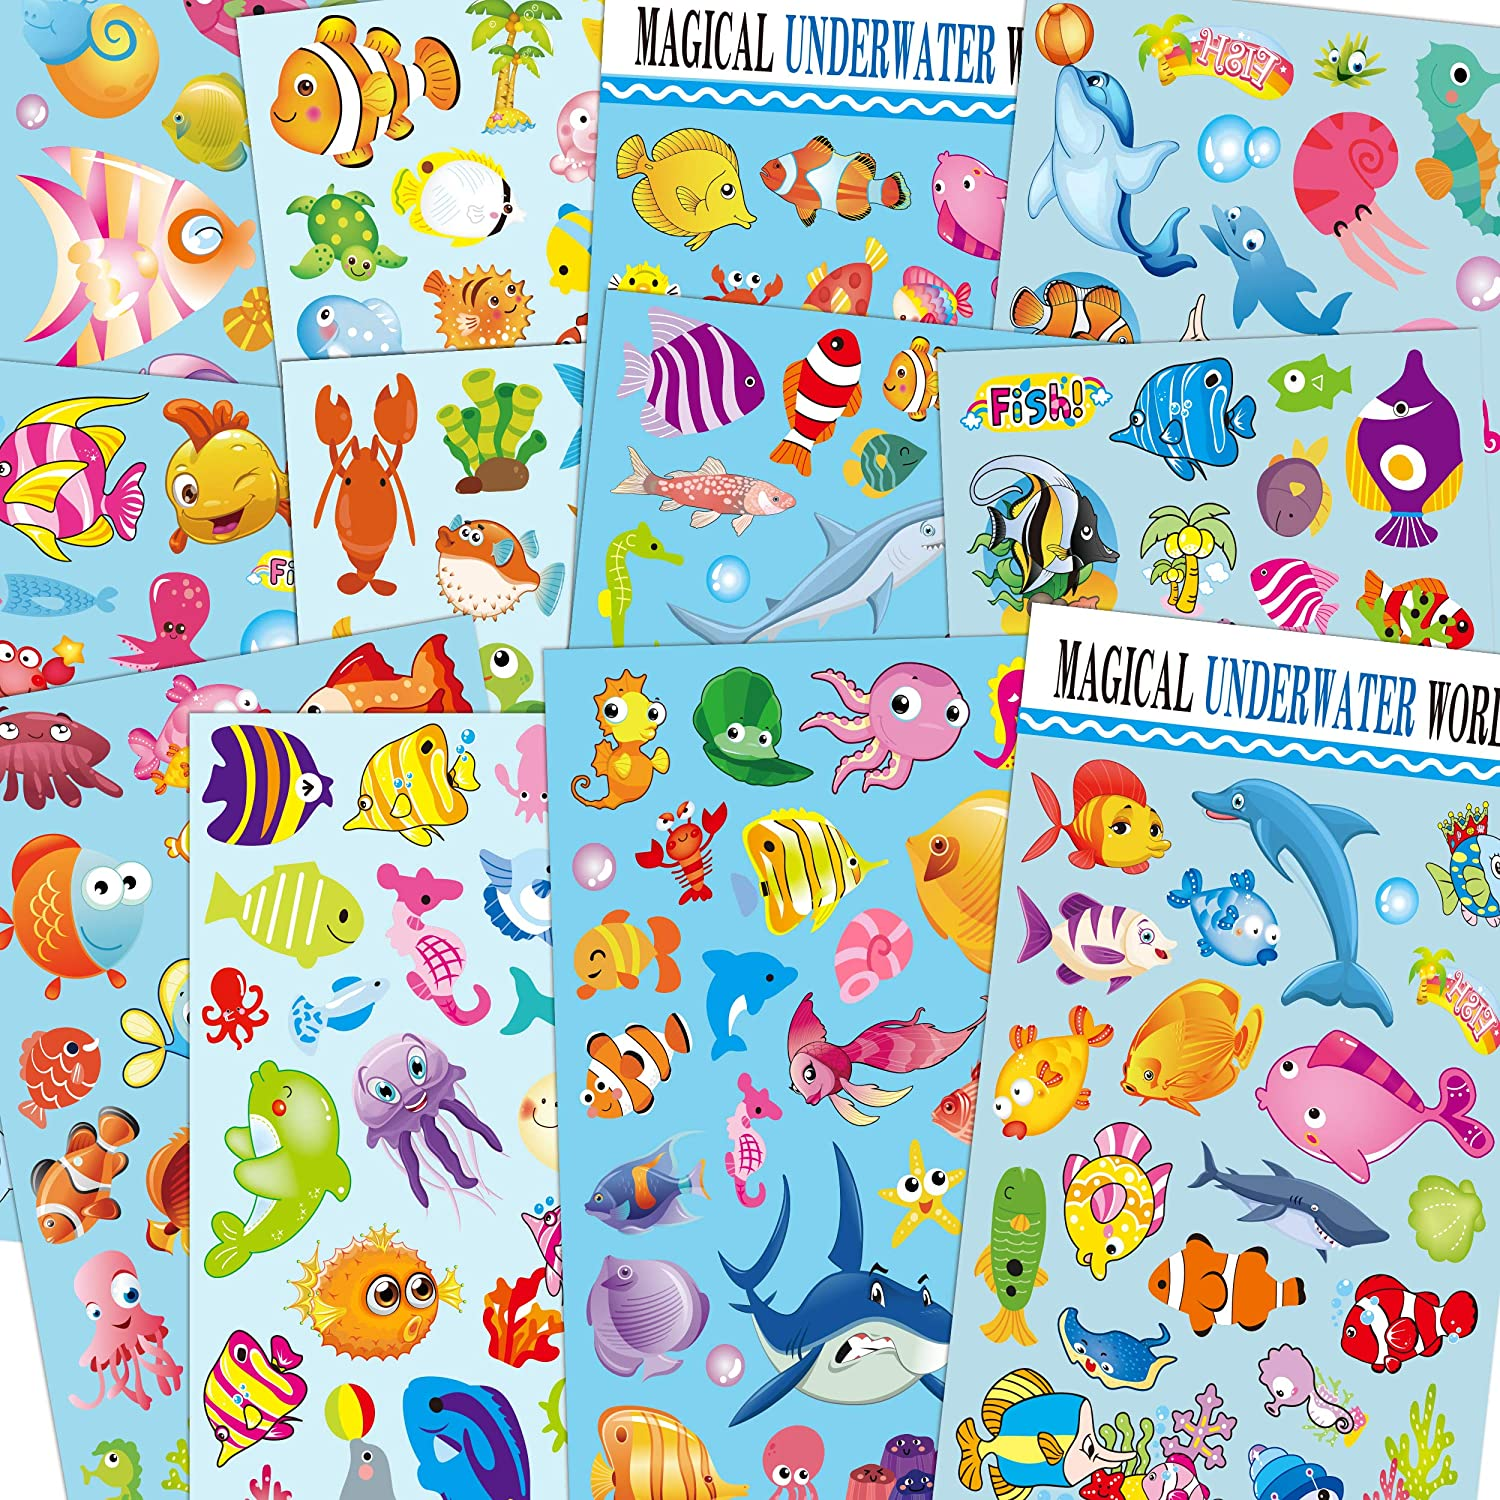 12 Sheets Sea World Scrapbook Decal Stickers for Kids with Angelfish, Sharks, Starfish, Sharks, Hippocampus, Octopus, Whale, Great as Reward Stickers Birthday Party Favors Toddlers